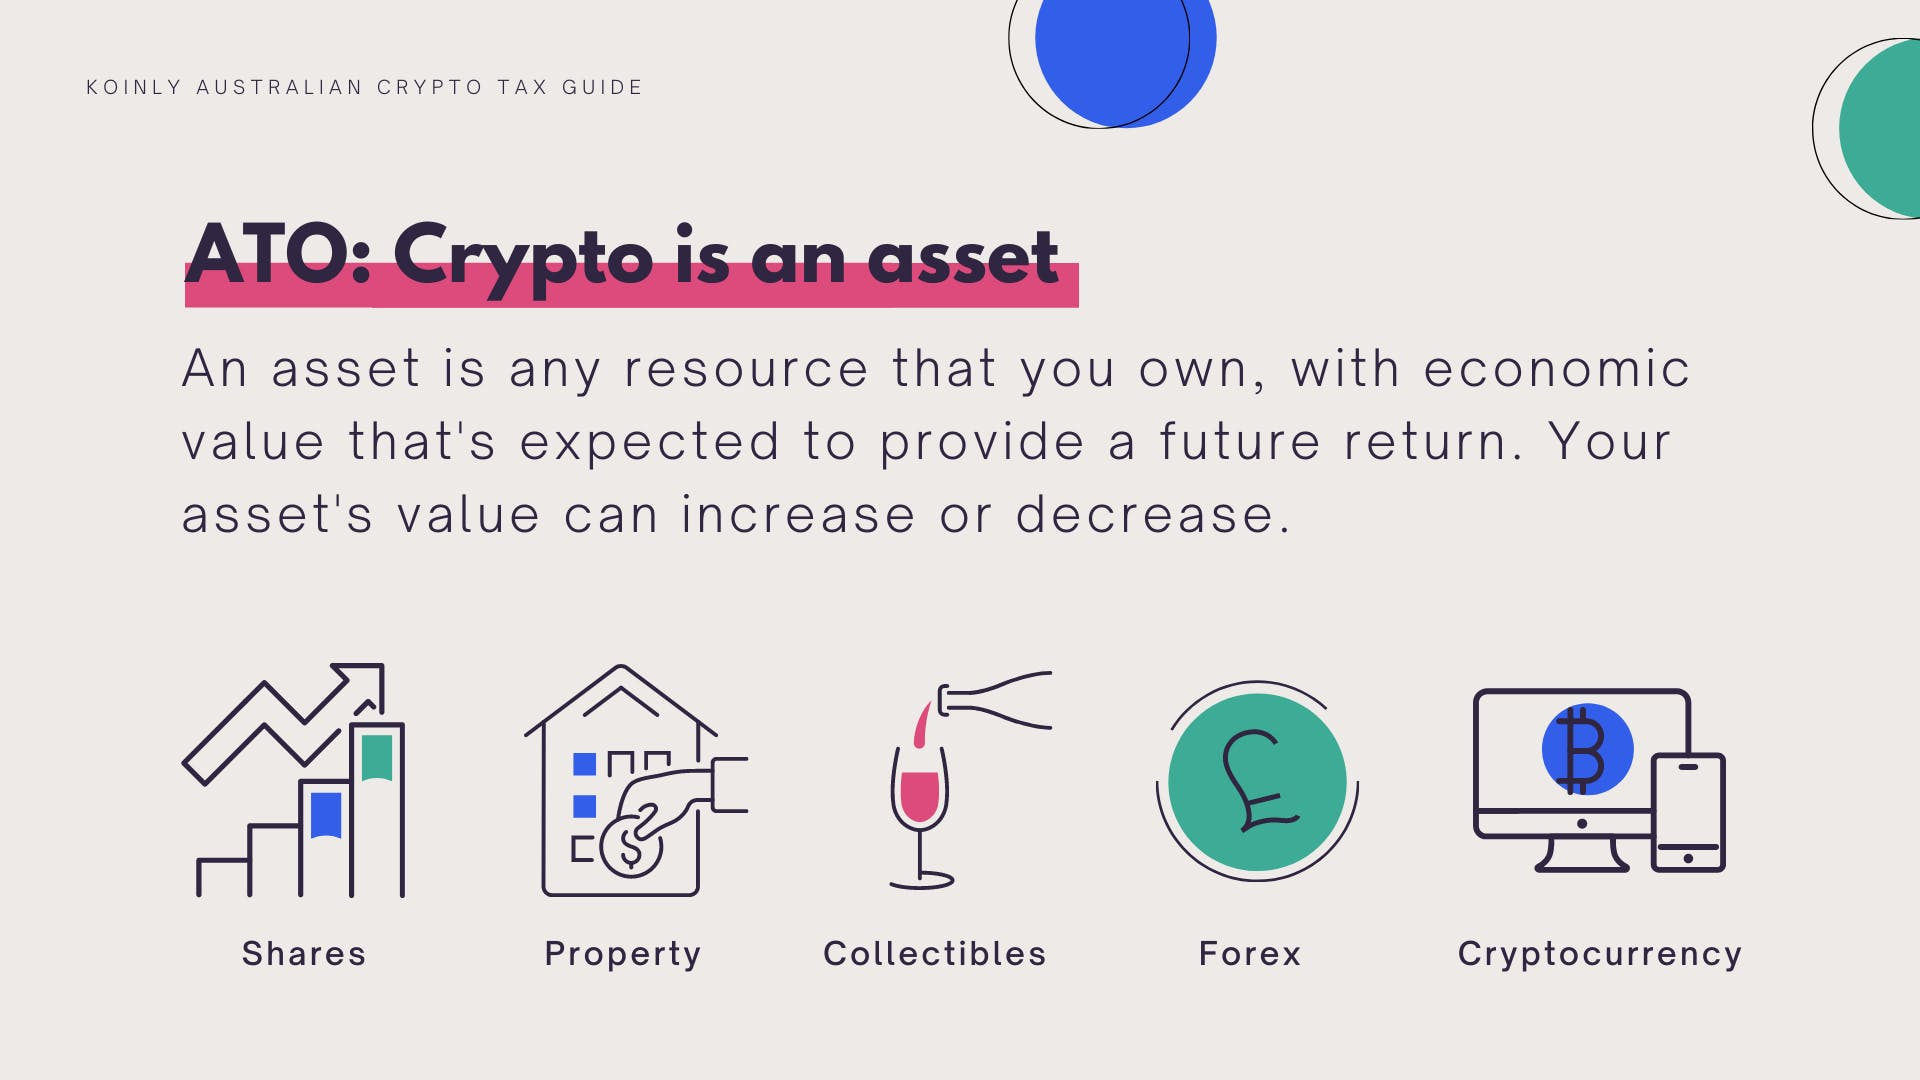 Crypto is an asset for capital gains tax according to Australia's ATO